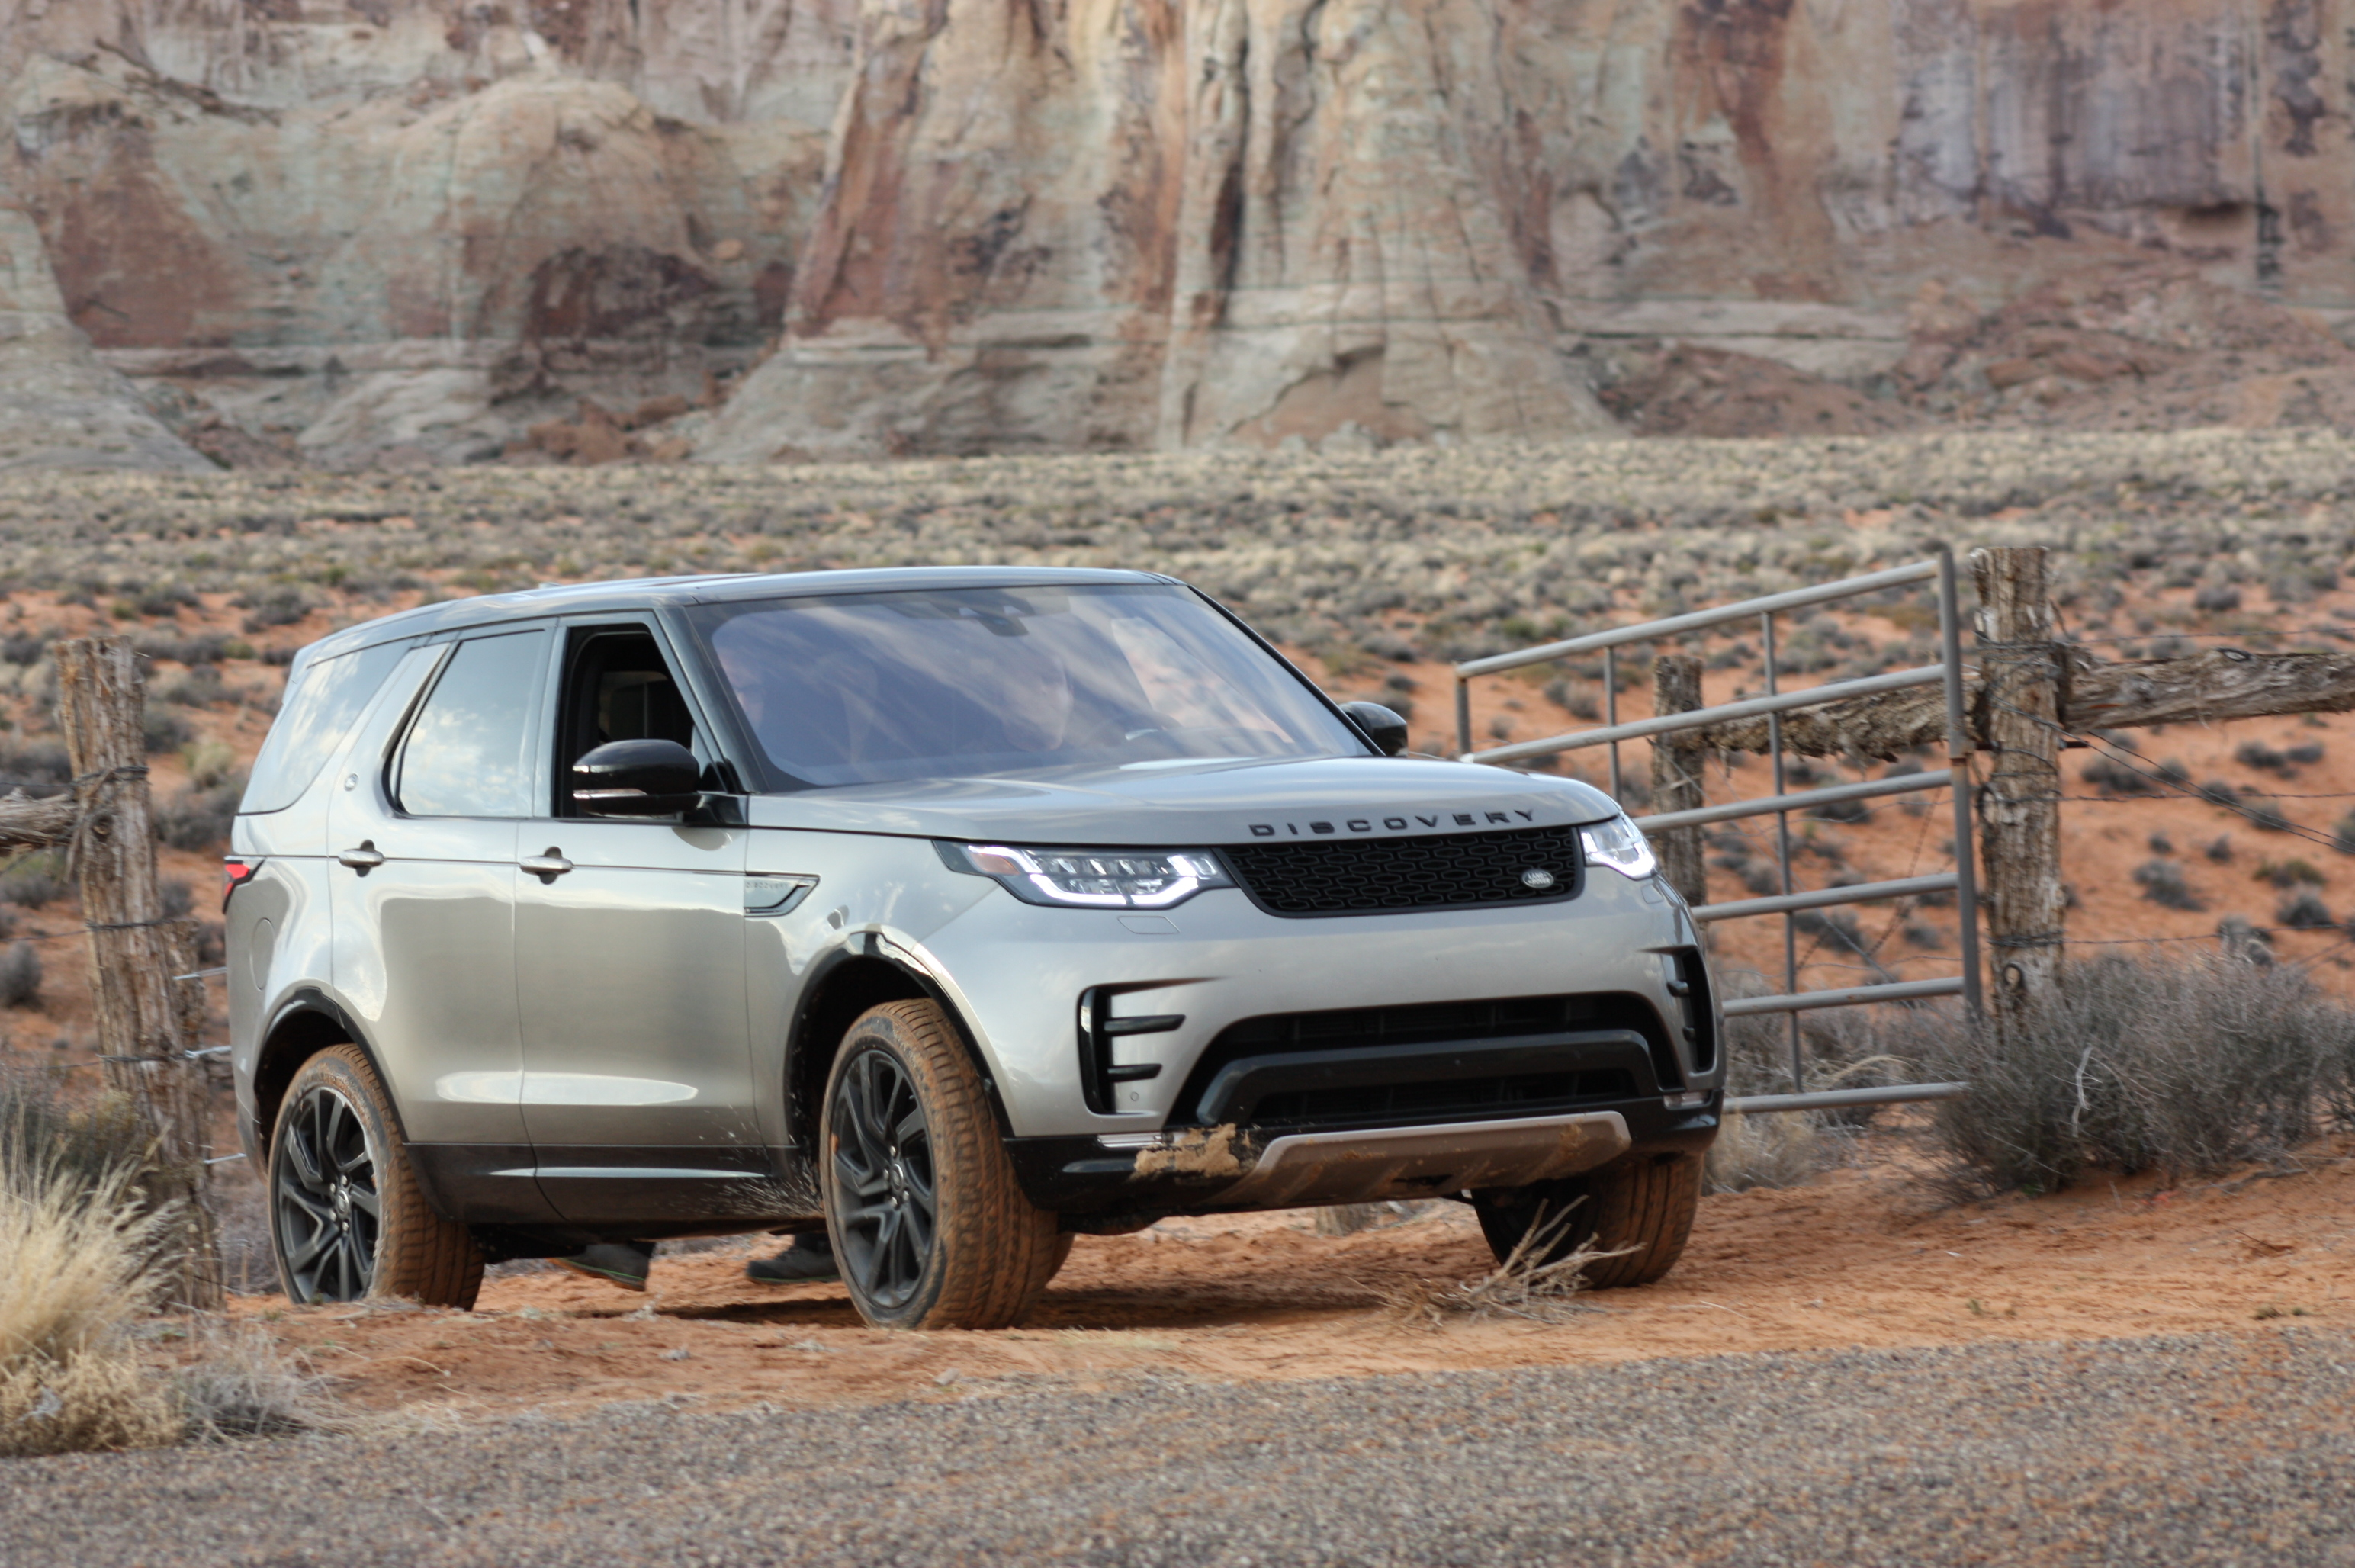 01-2017-land-rover-discovery-first-drive-cp.jpg